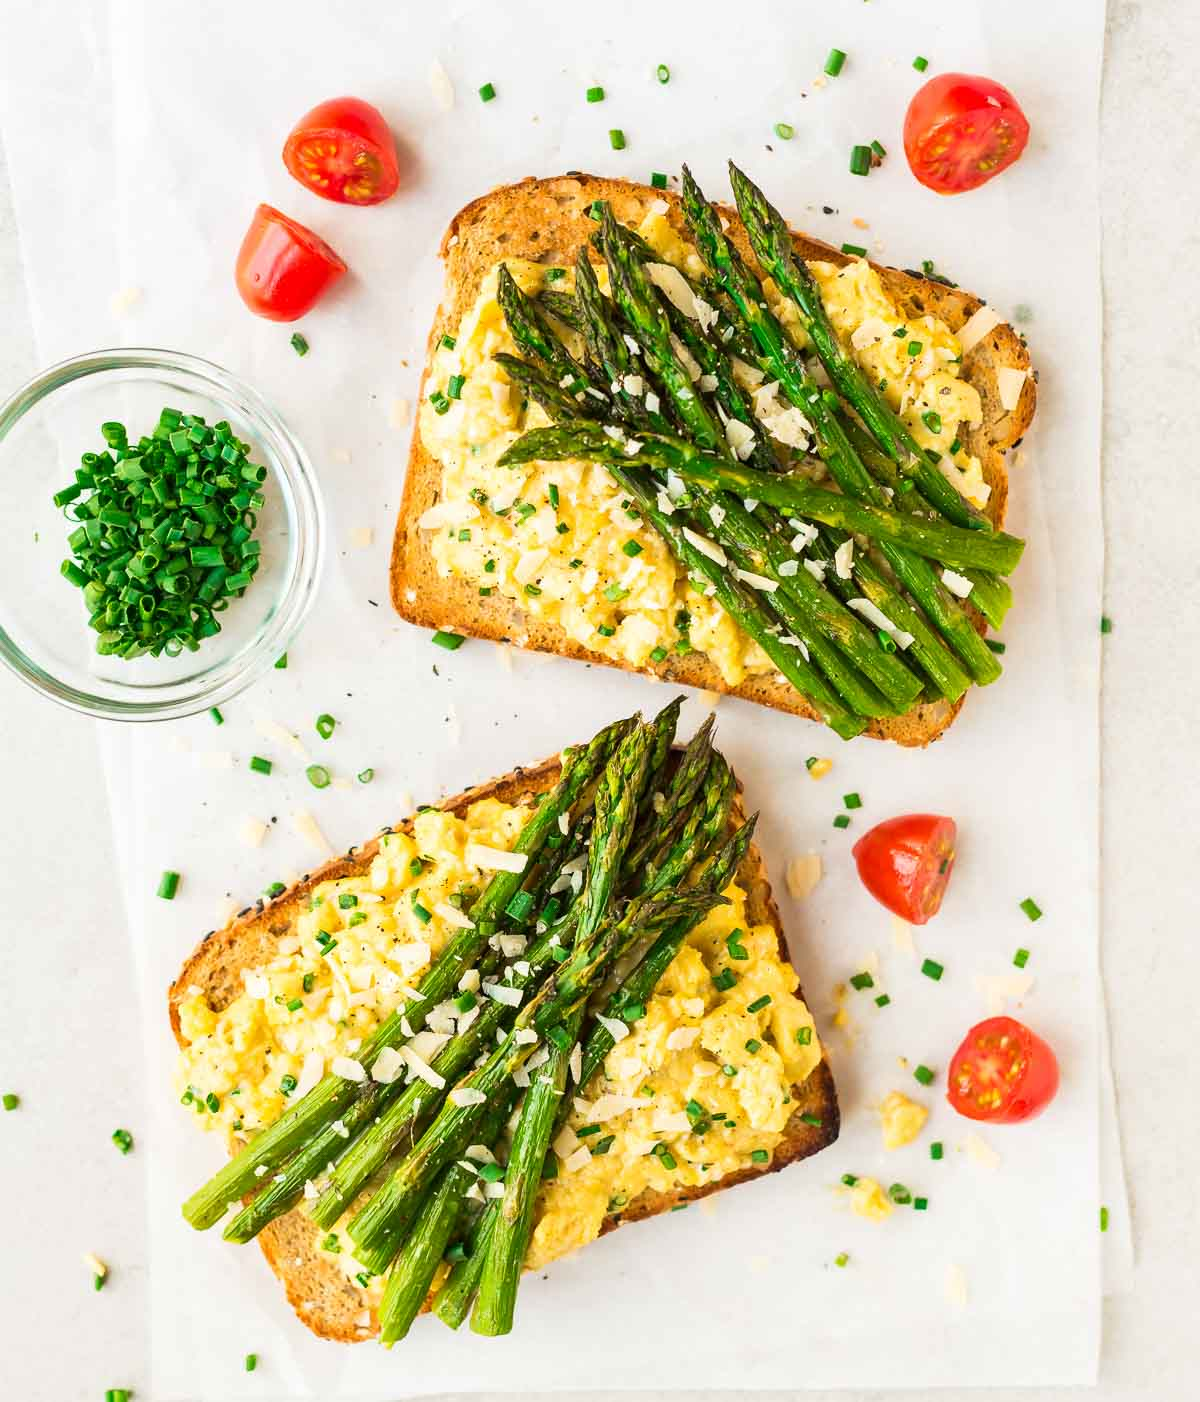 High protein vegetarian recipe: Asparagus and Soft Scrambled Egg Toasts. Recipe at wellplated.com | @wellplated